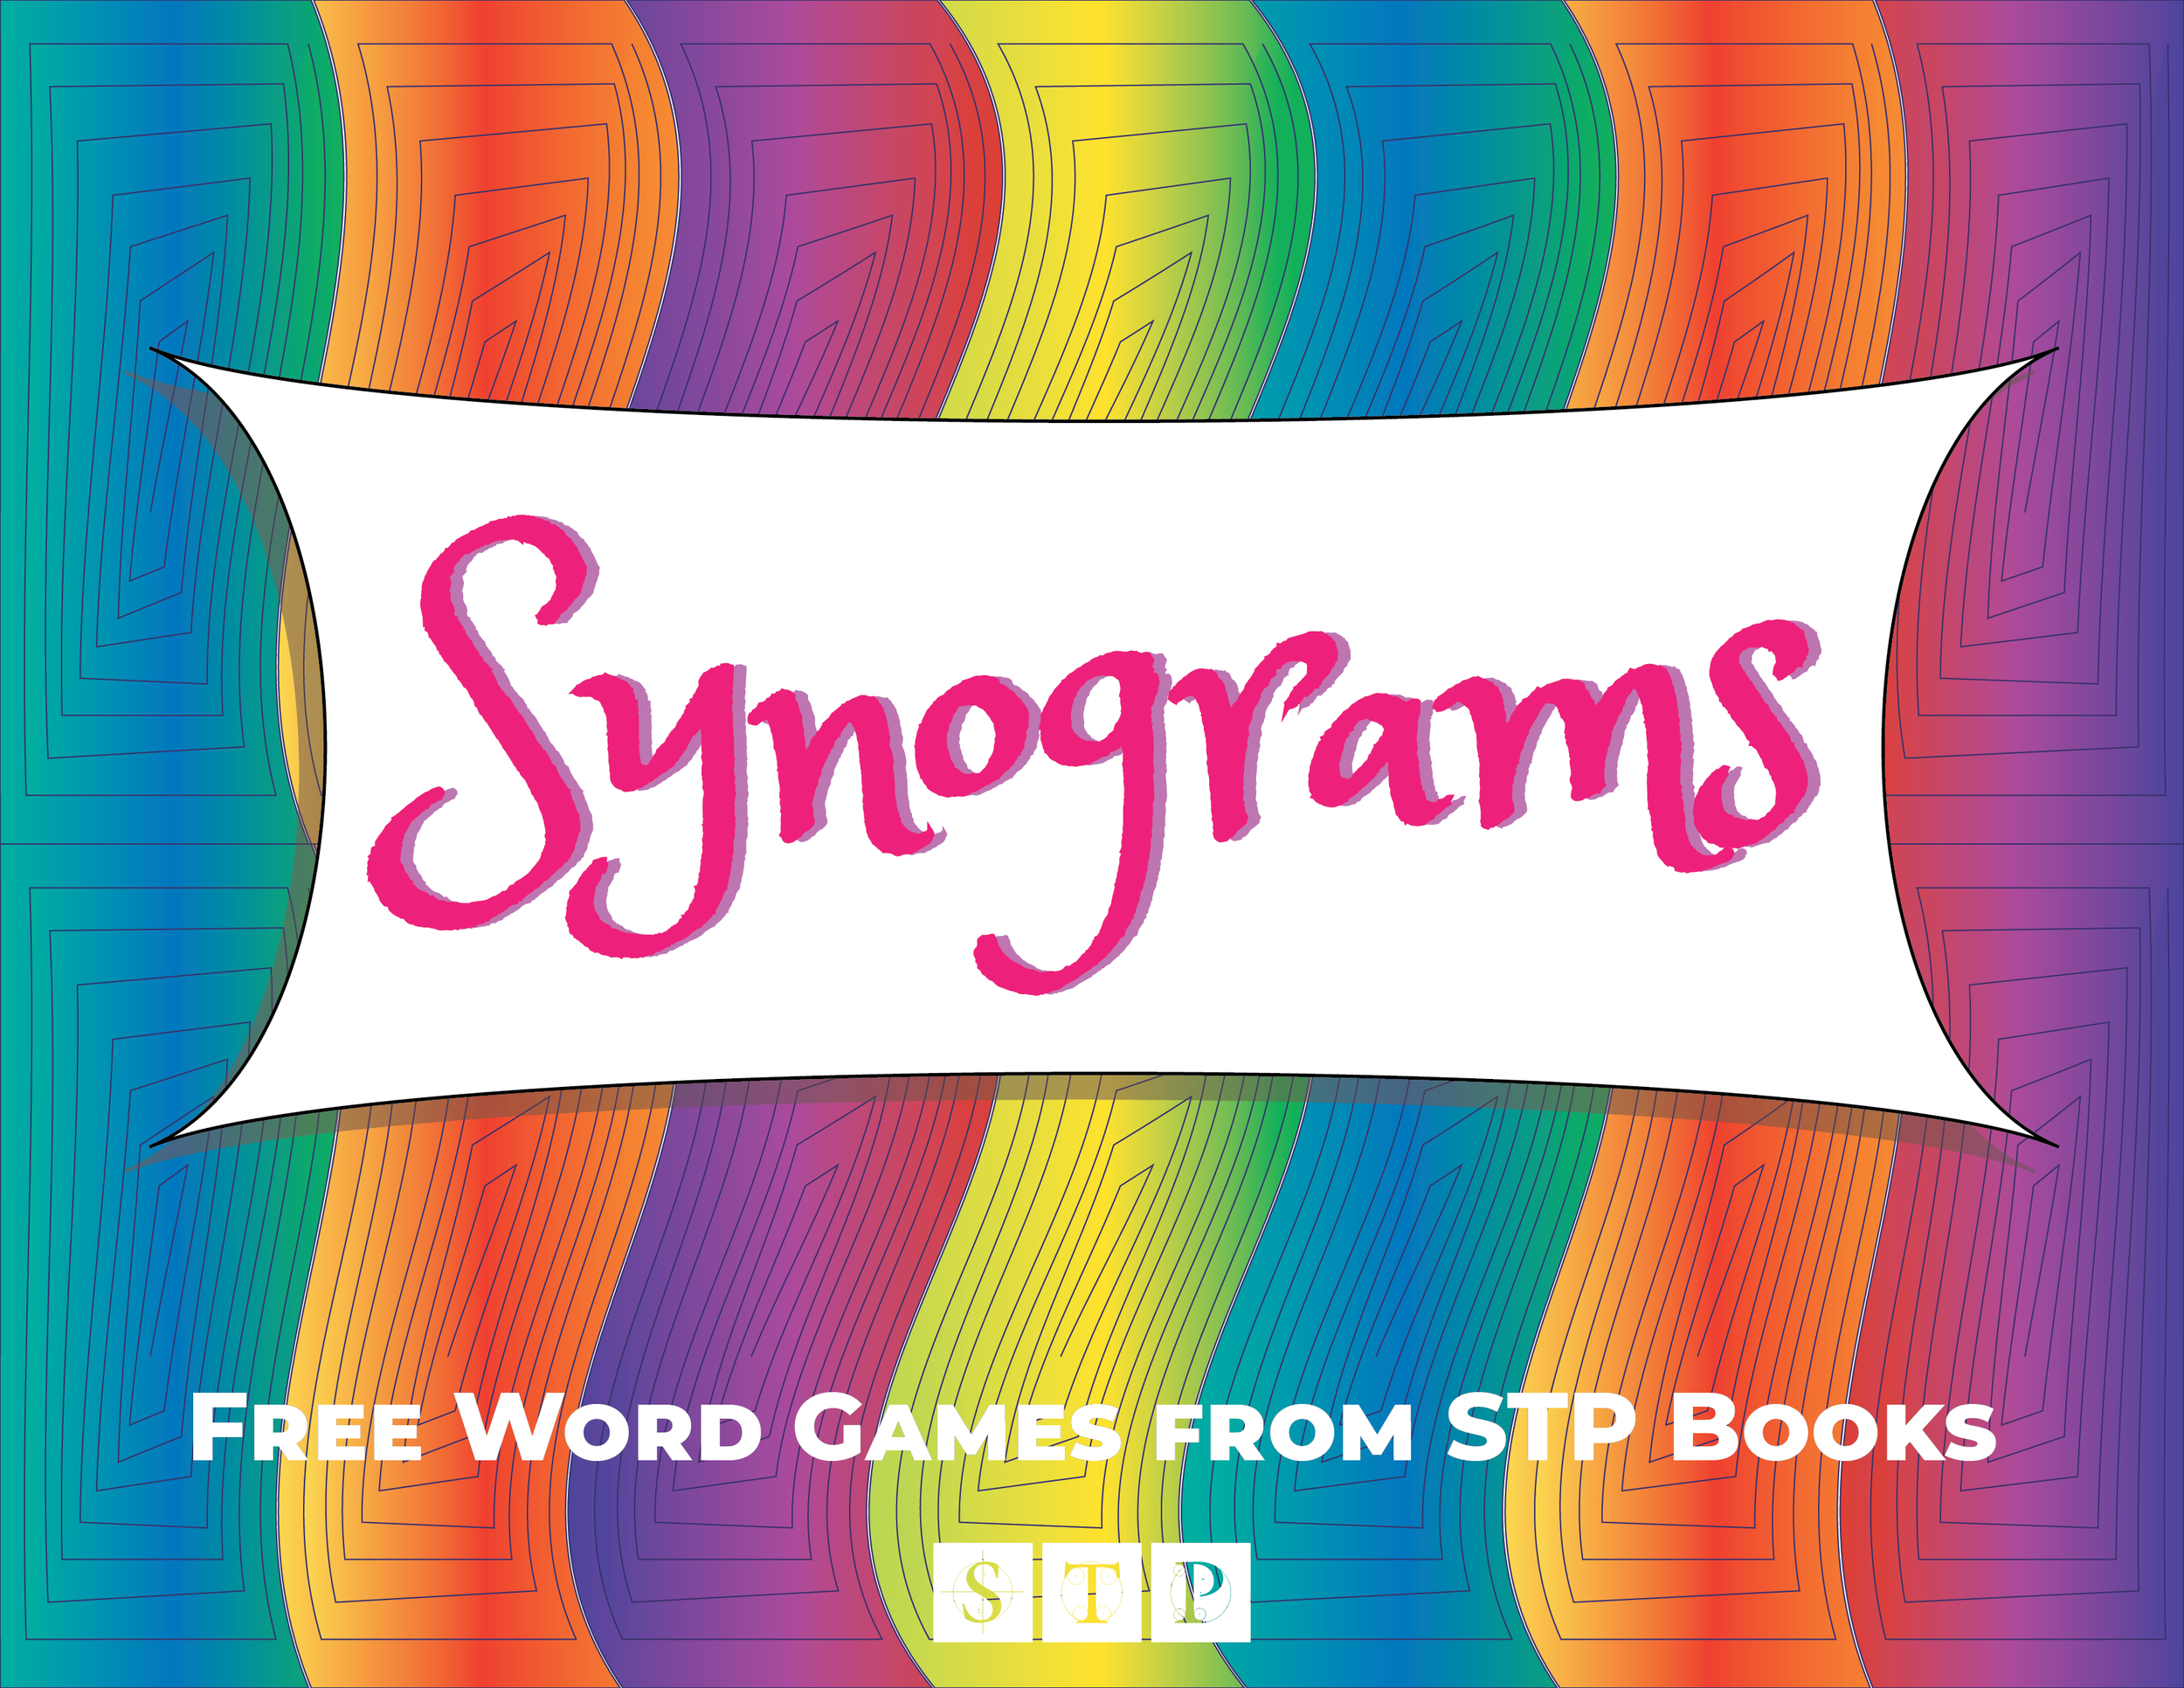 - Solve the clues by unscrambling the anagrams to reveal a list of synonyms for the main word!